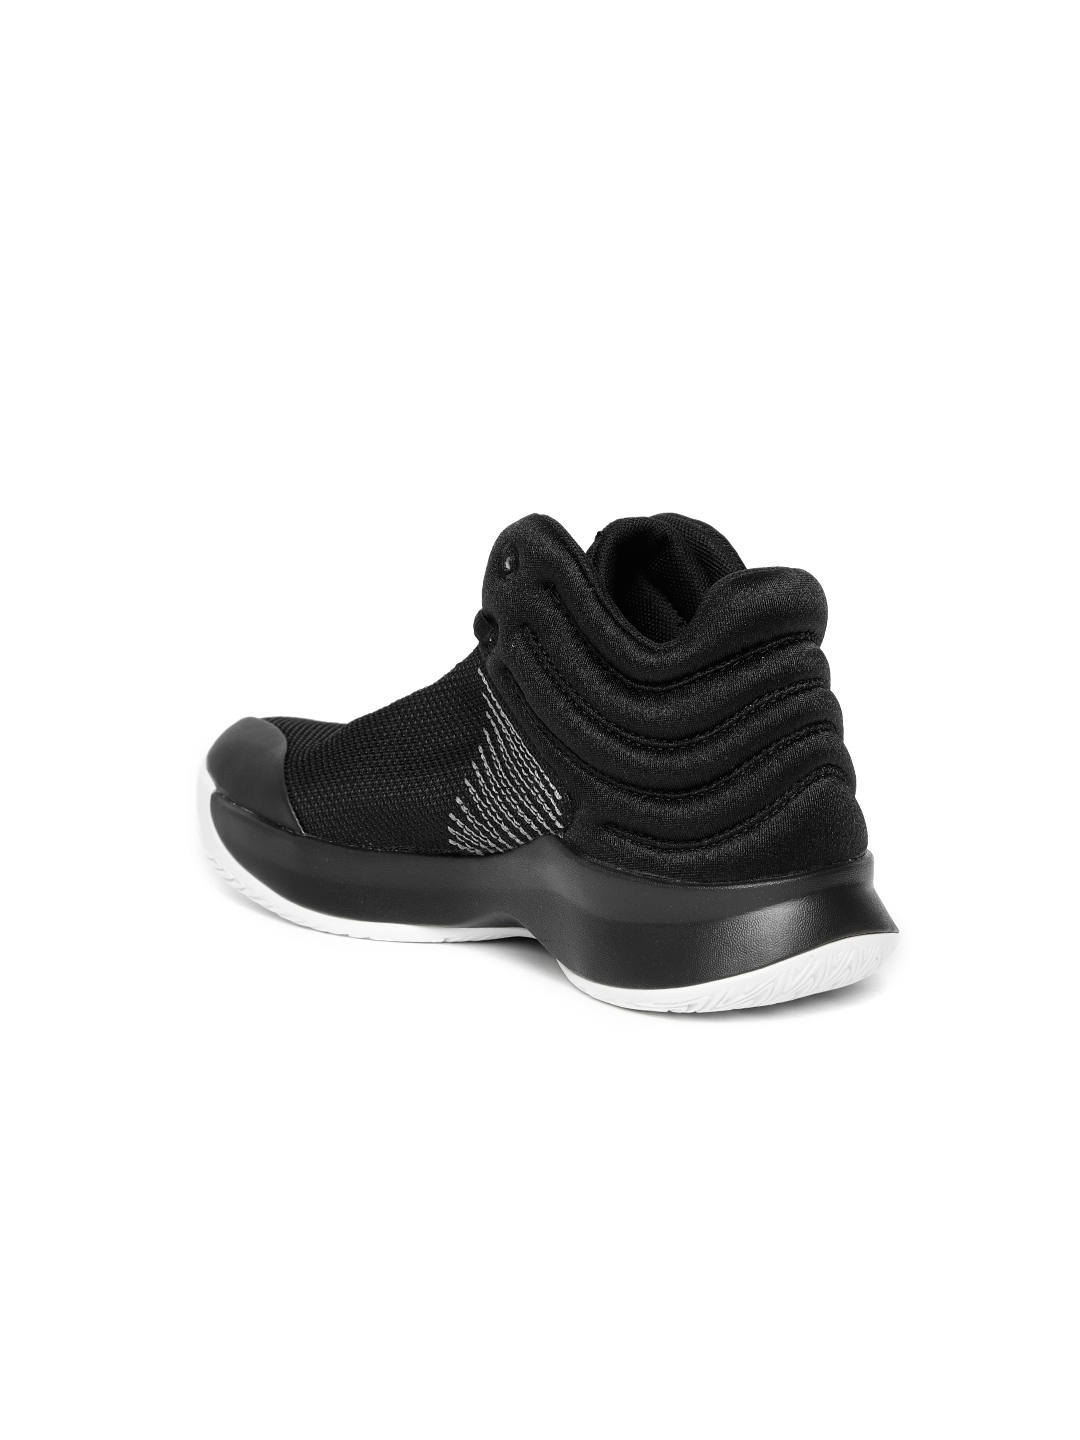 new product 530d6 bace3 ADIDAS Kids Black Pro Spark 2018 Basketball Shoes